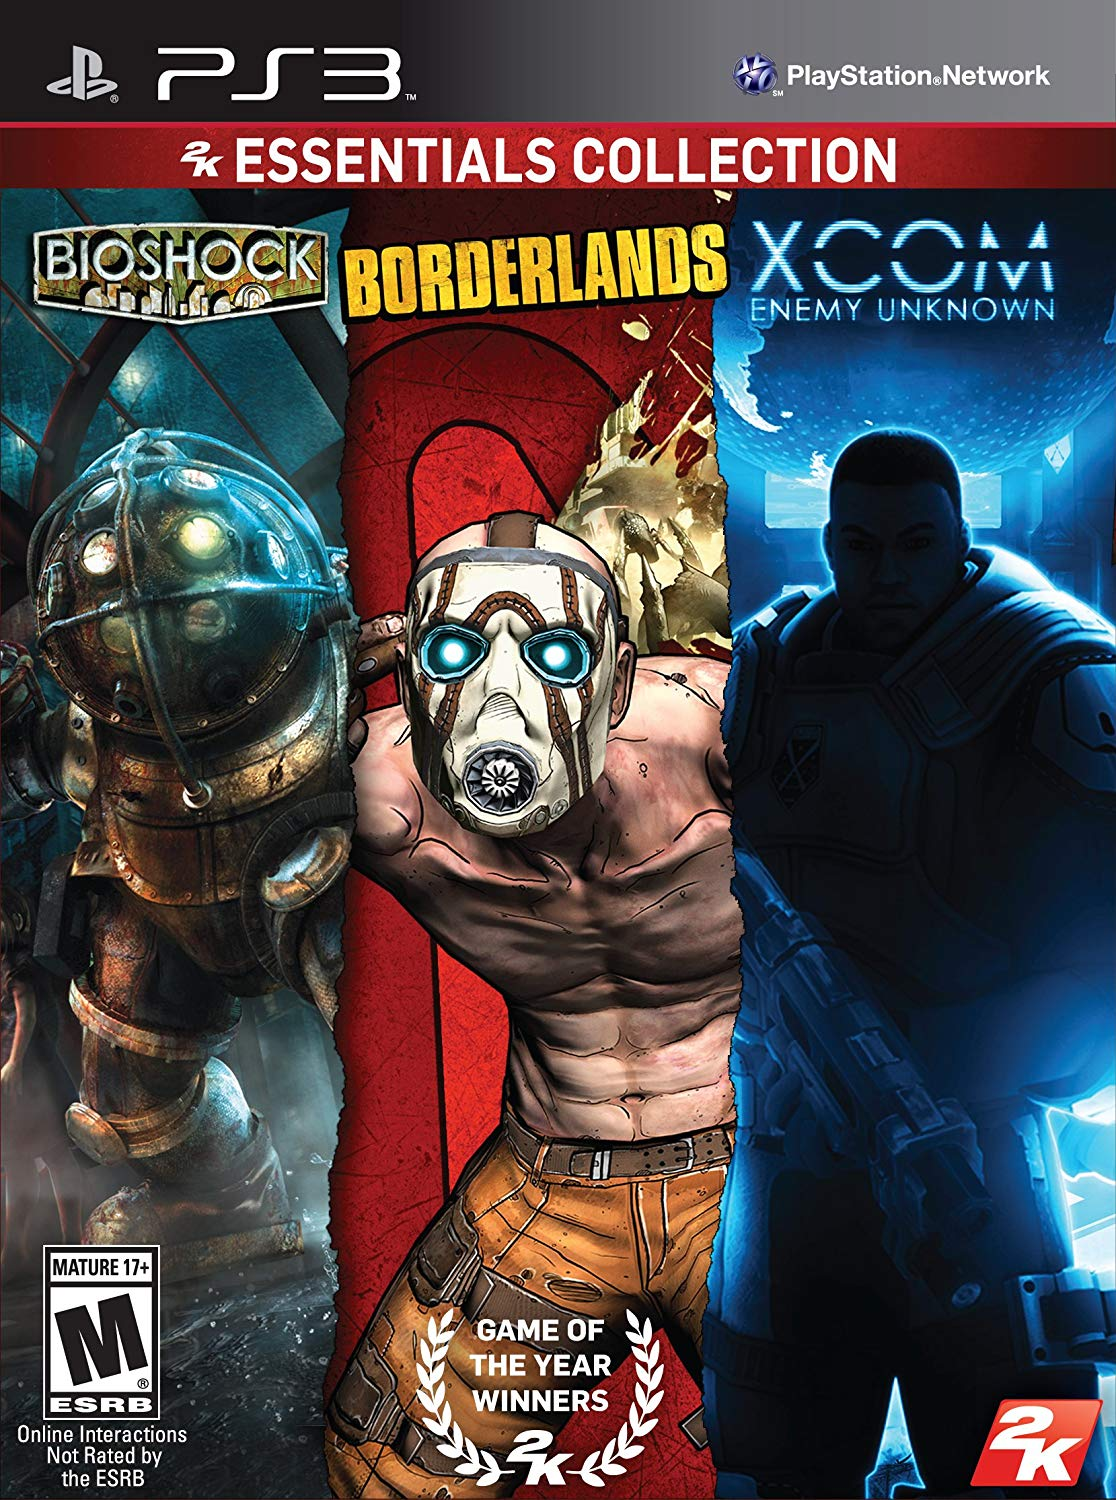 2K Essentials Collection (Bioshock + Borderlands + XCOM Enemy Unknown) (US)